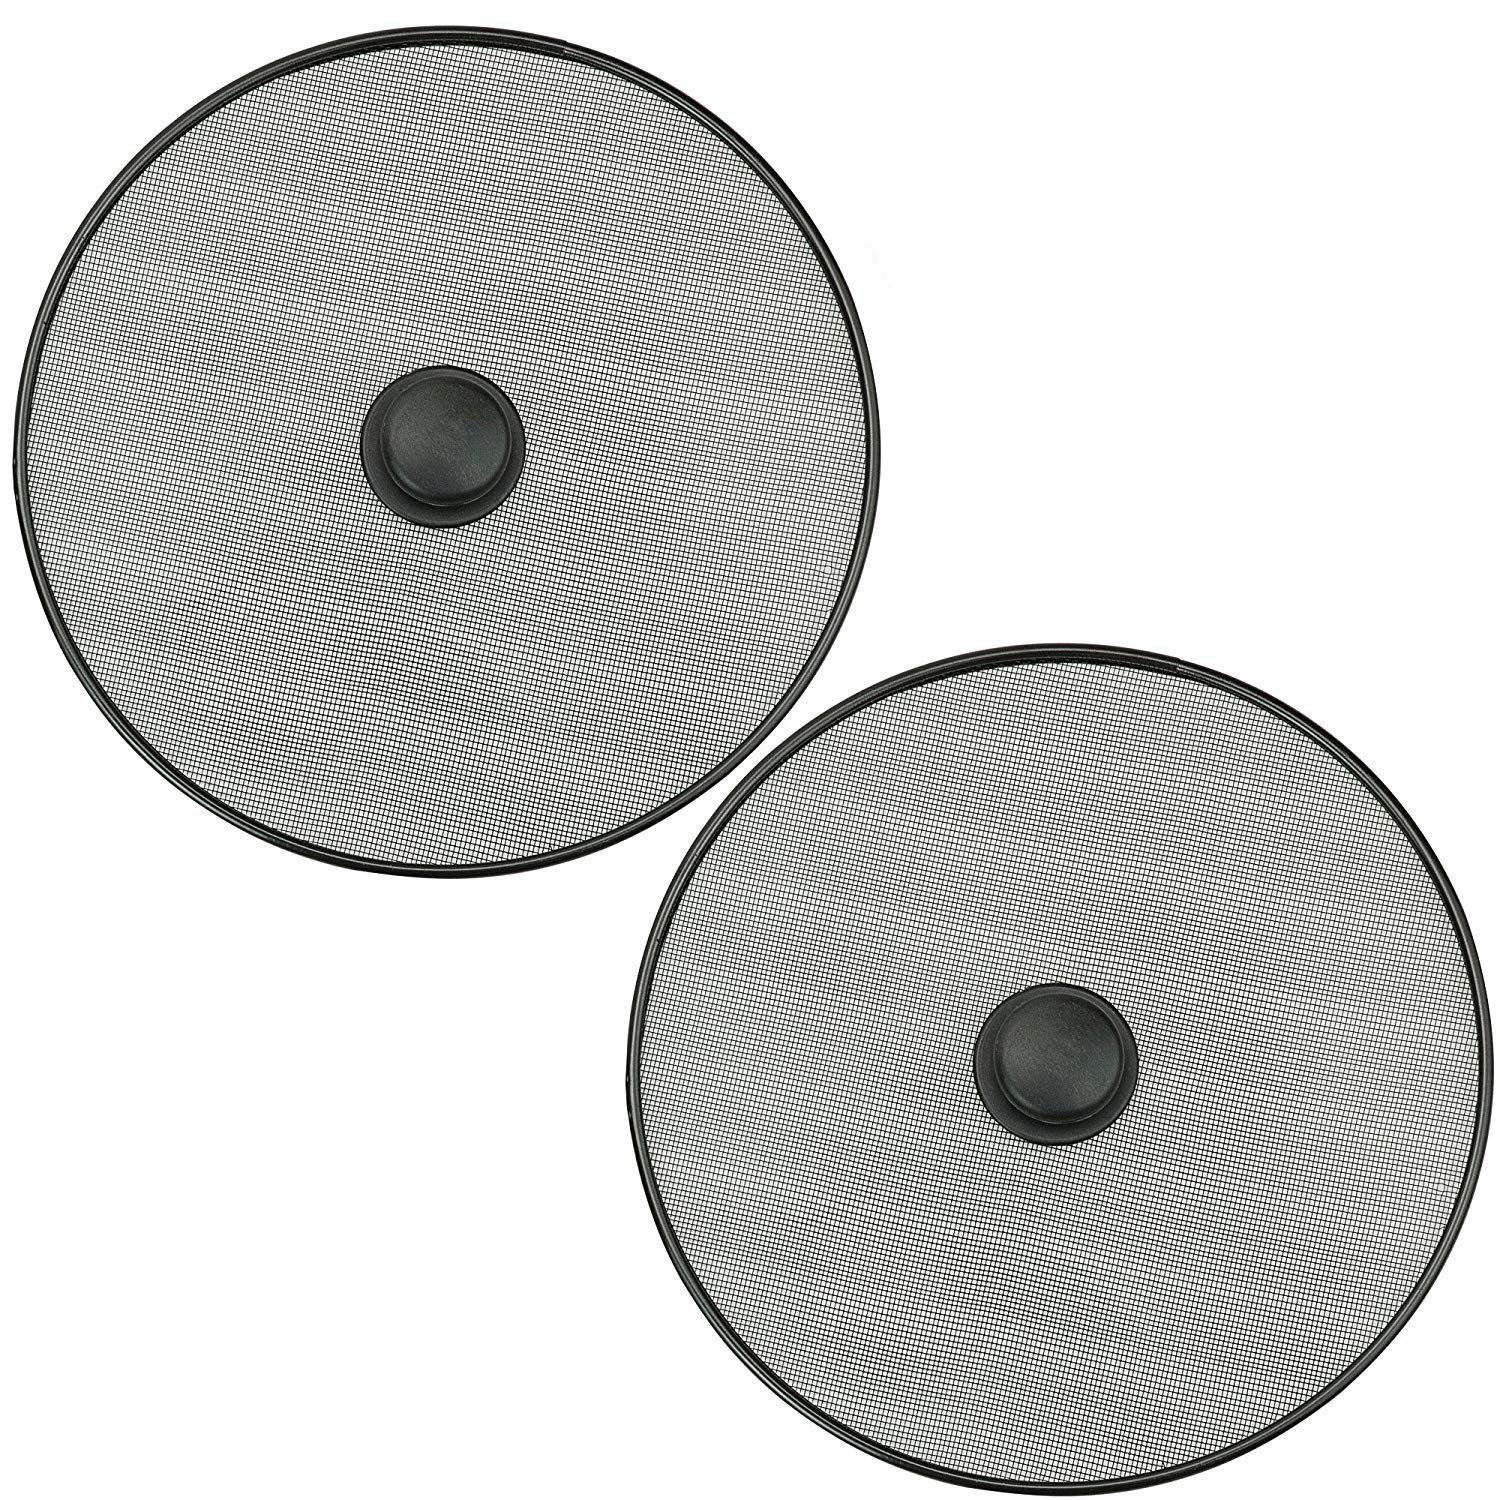 DecorRack Pack of 2 Splatter Screen Protector 11 inch, Mesh Lid, Splatter Guard with Knob for Frying Pan and Cooking, Steel Mesh Oil Splatter Screen Cover, Flat Strainer in Black (2 Pack)